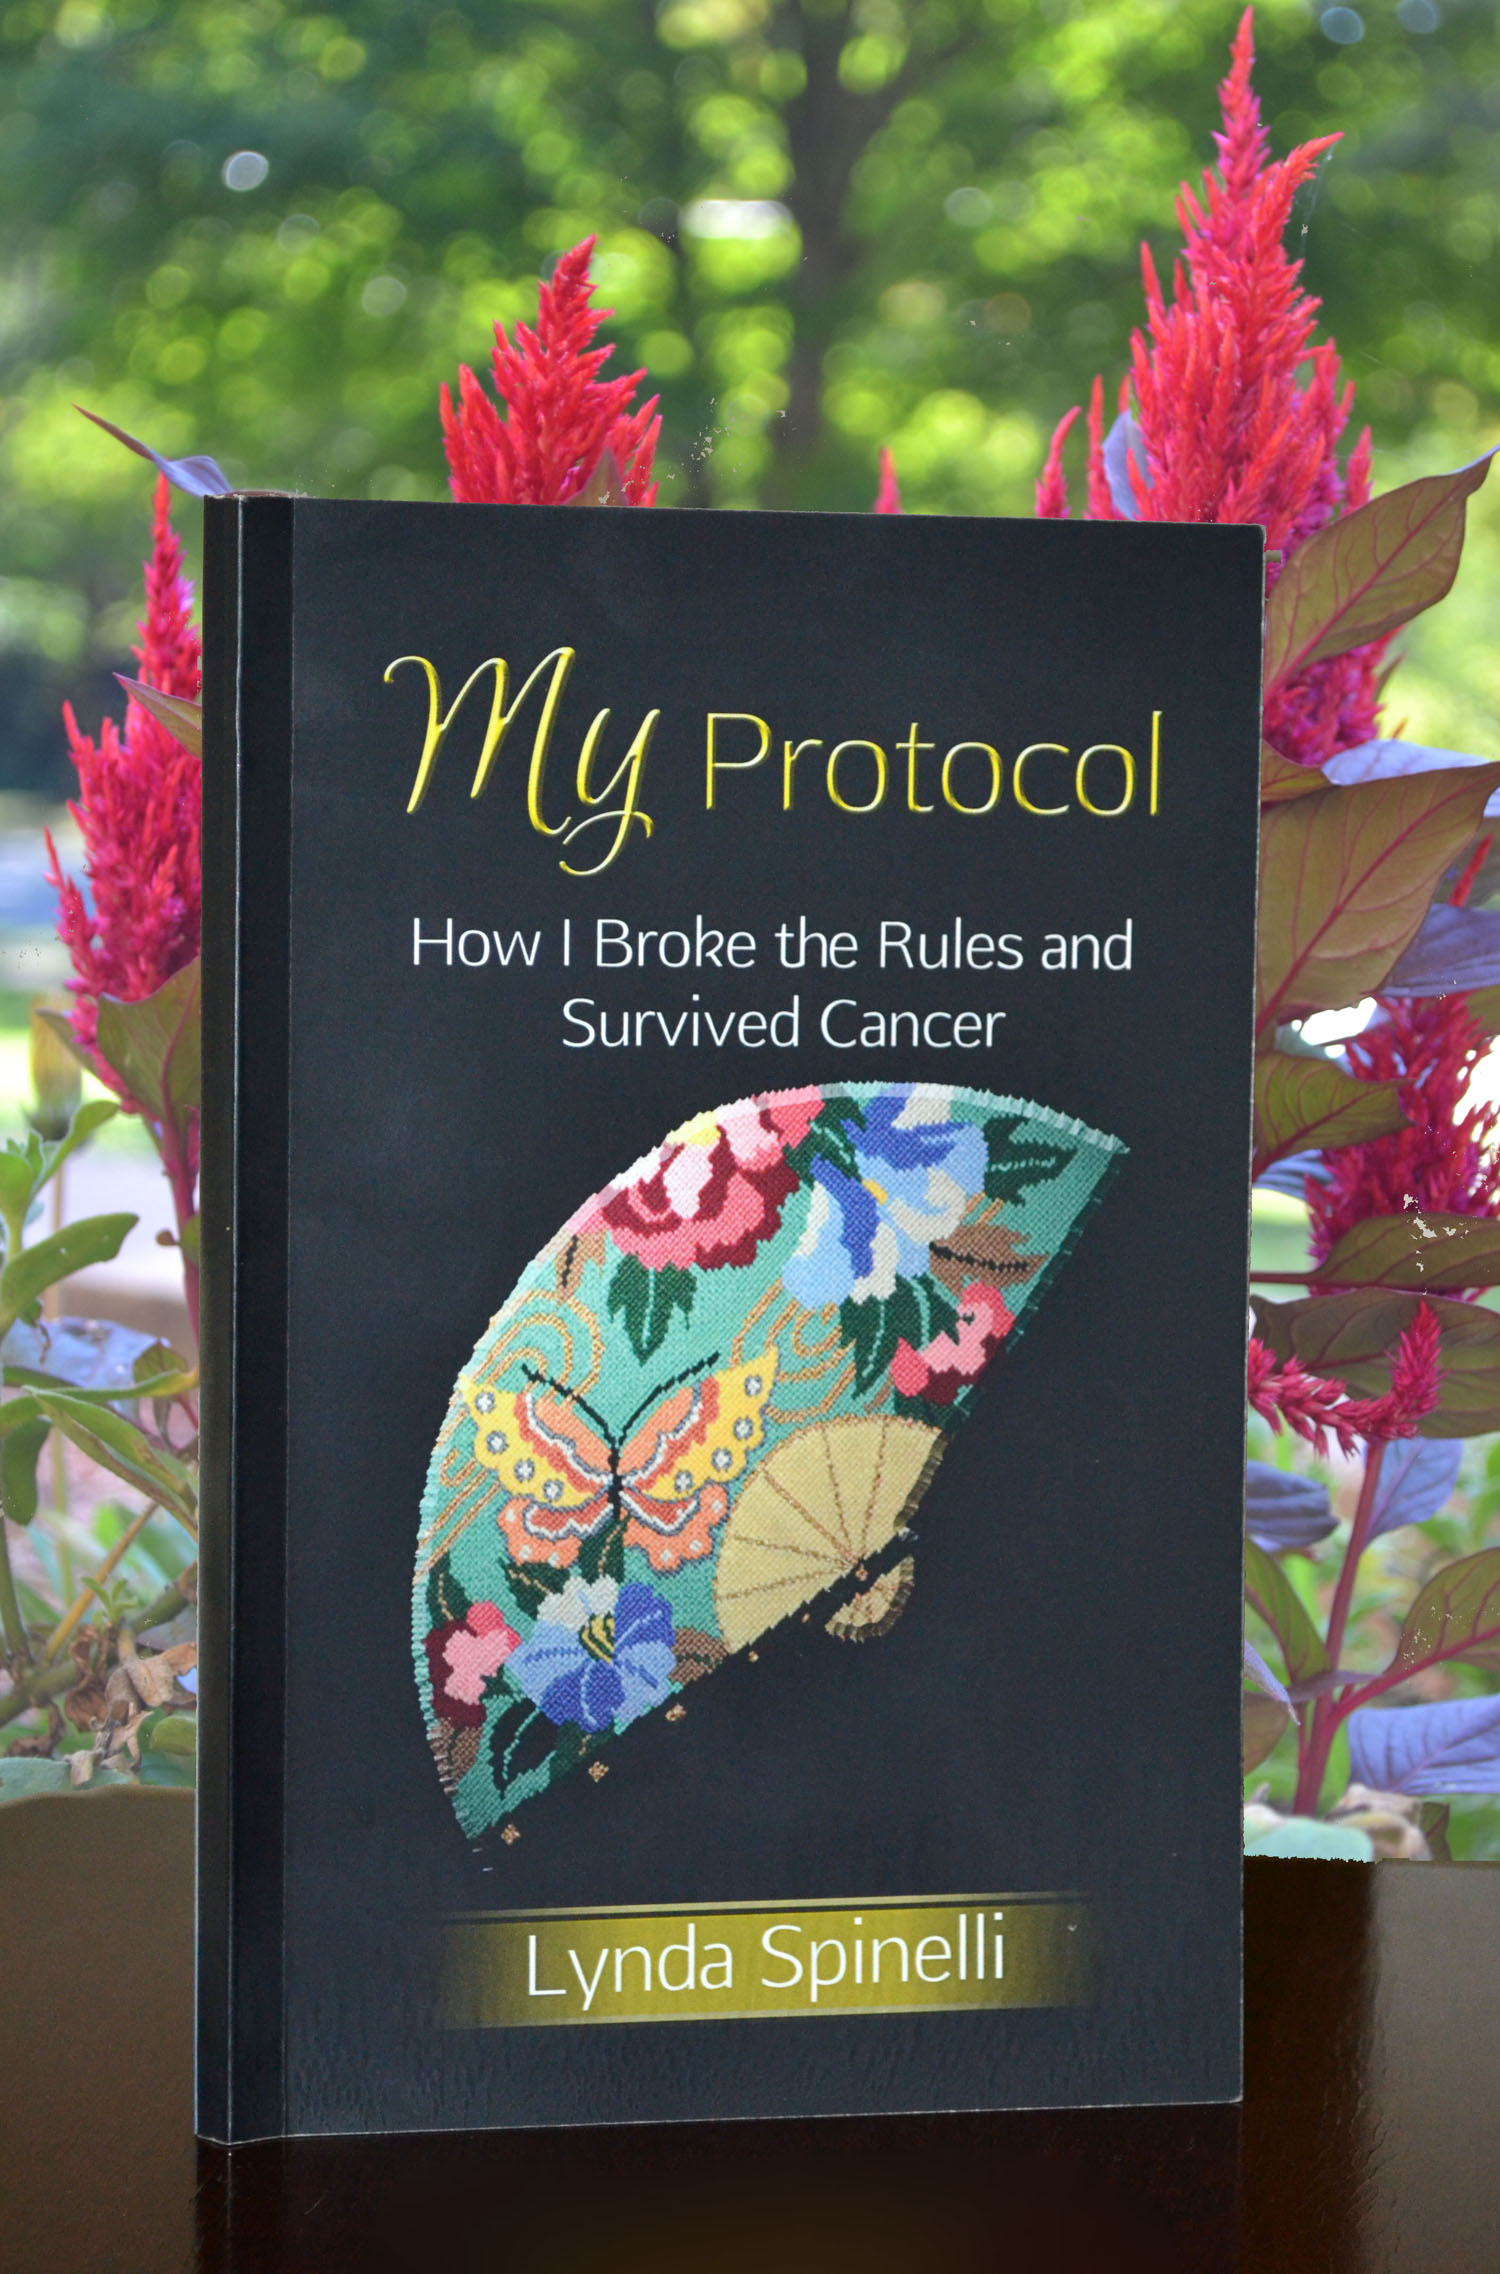 My Protocol book by Lynda Spinelli 300 dpi